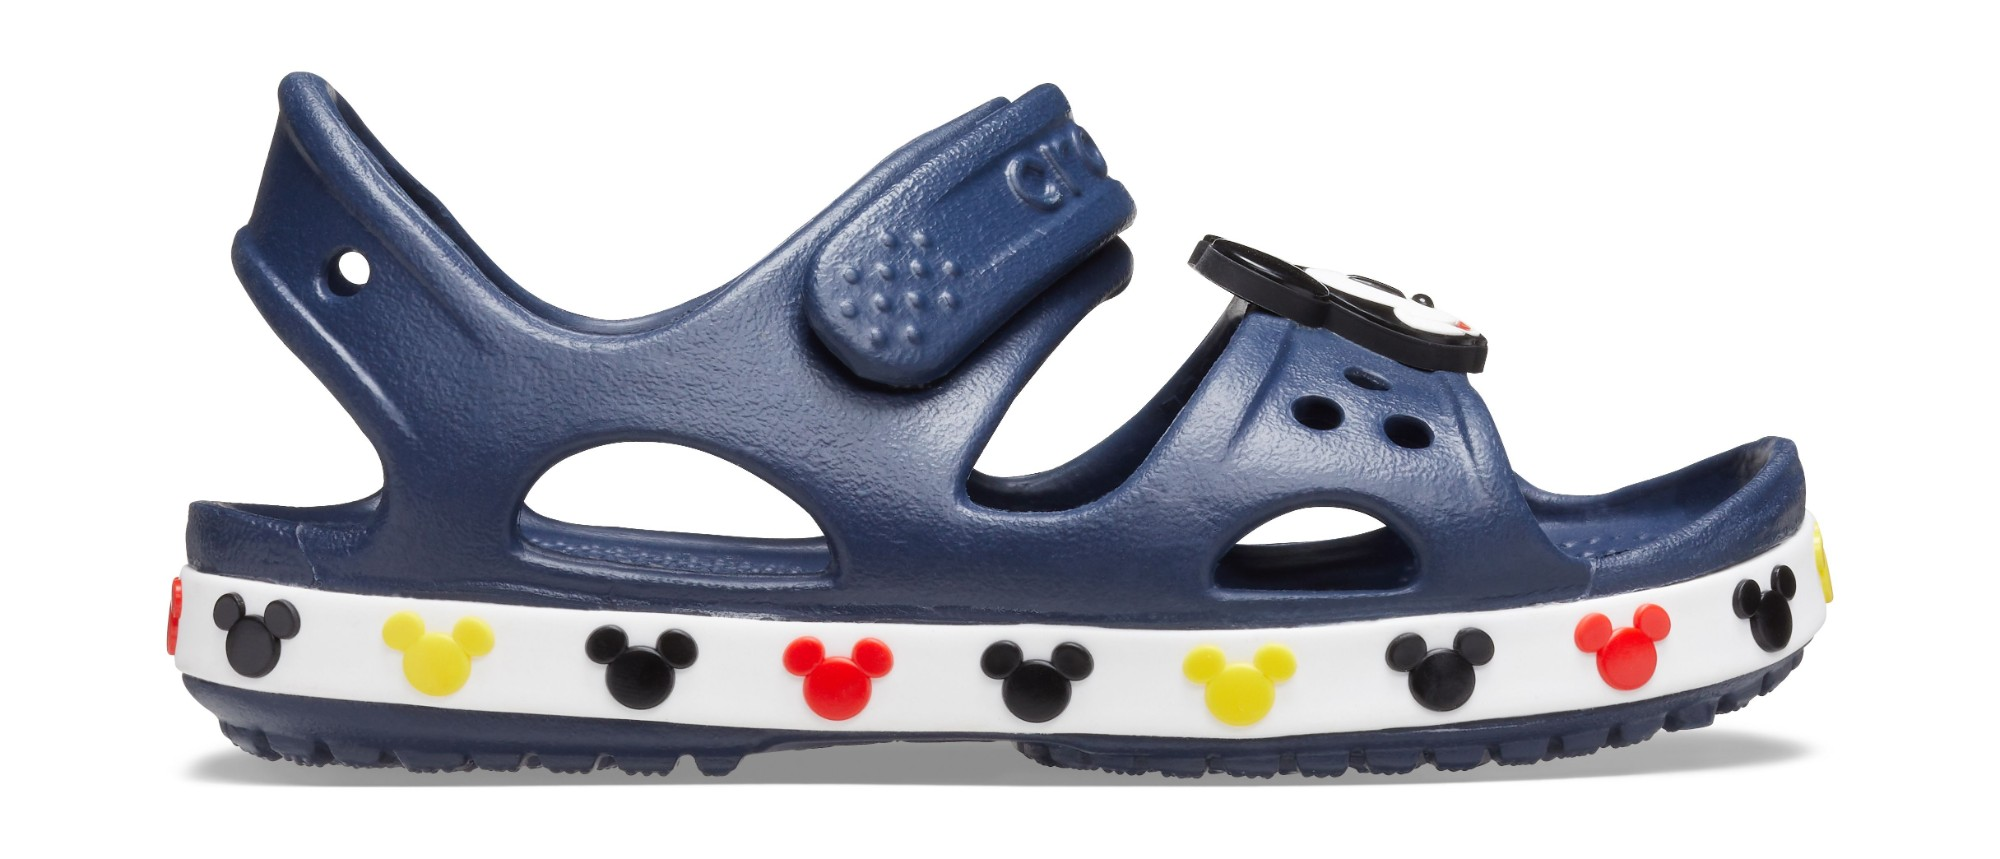 Crocs™ Kids Fun Lab Crocband II Mickey Mouse Sandal Navy 29